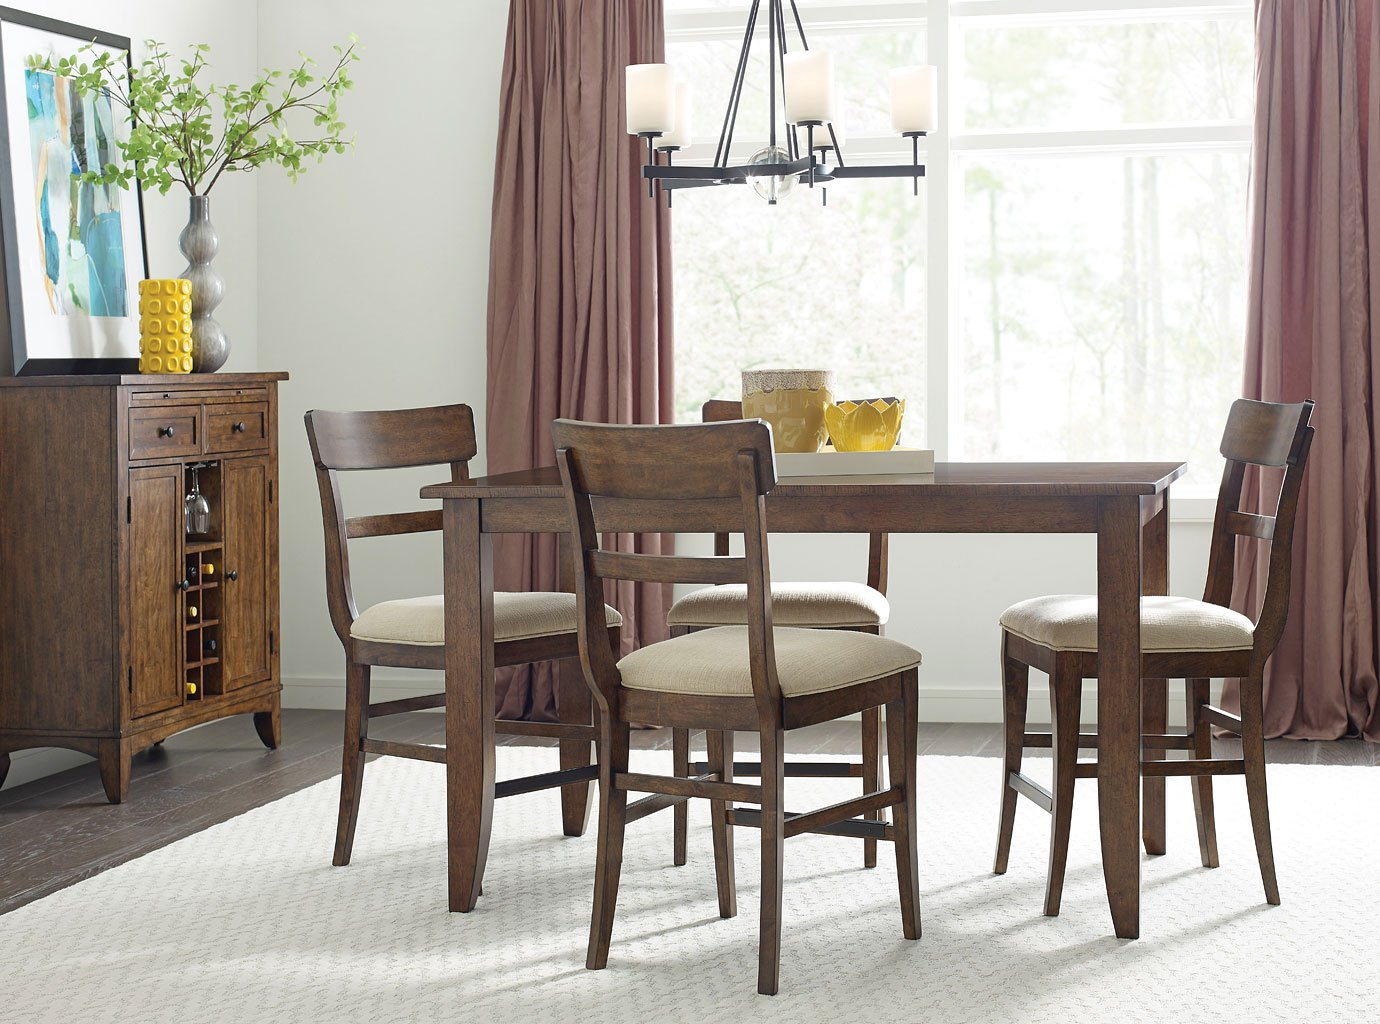 The Nook 60 Inch Counter Height Dining Room Set Maple